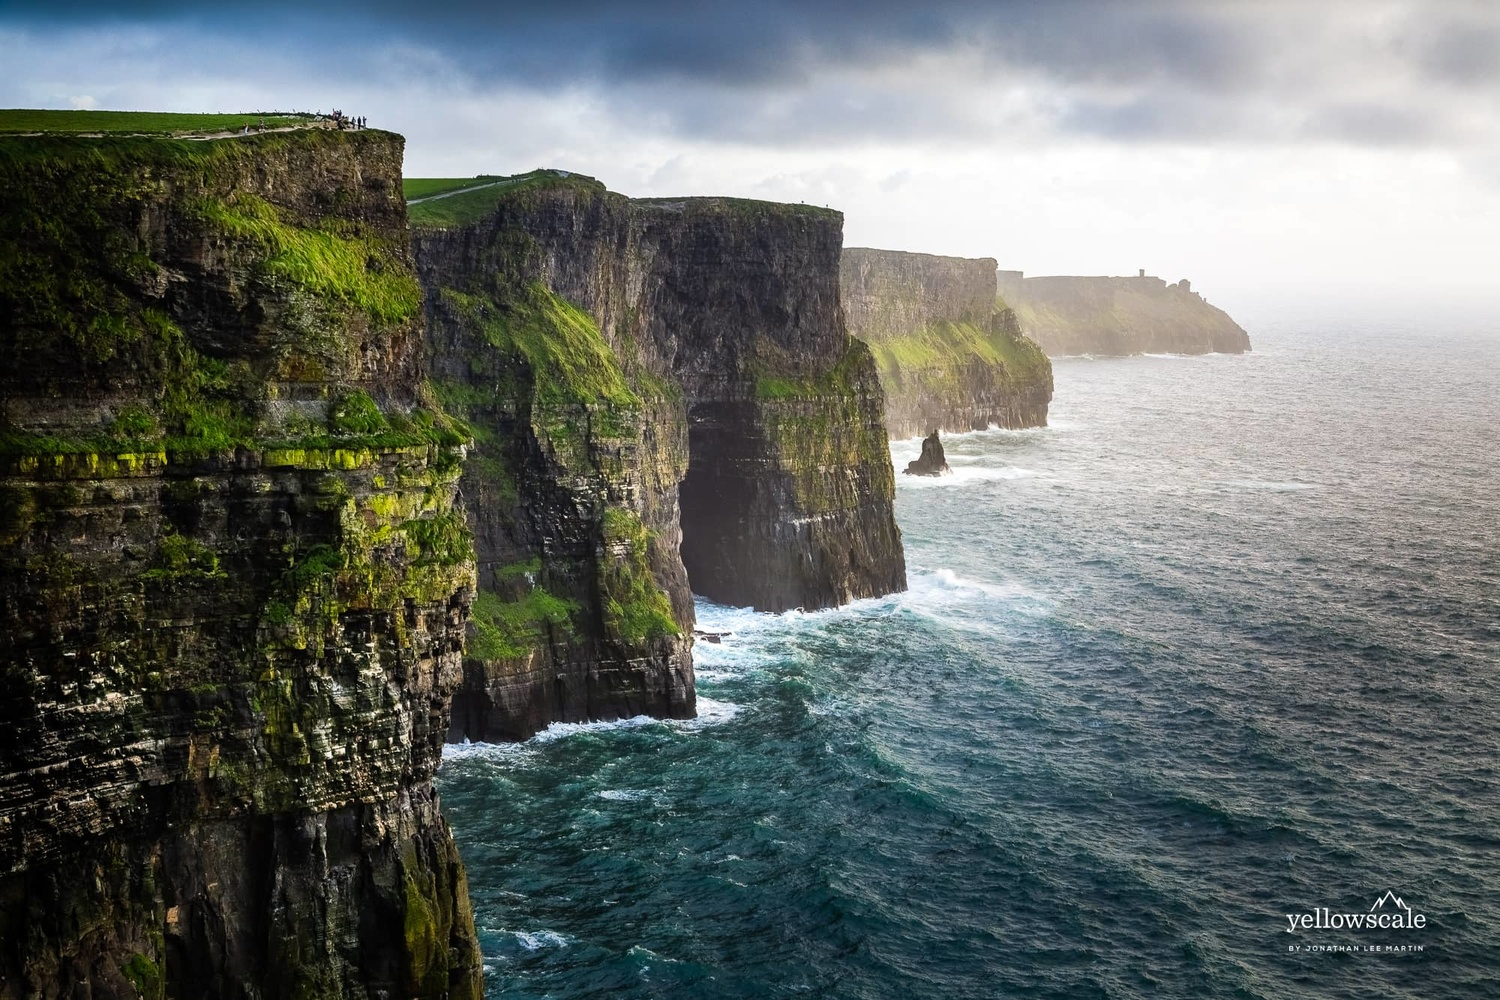 The idyllic and murderously overshot Cliffs of Moher are part of a scenic region with much (more) to offer.